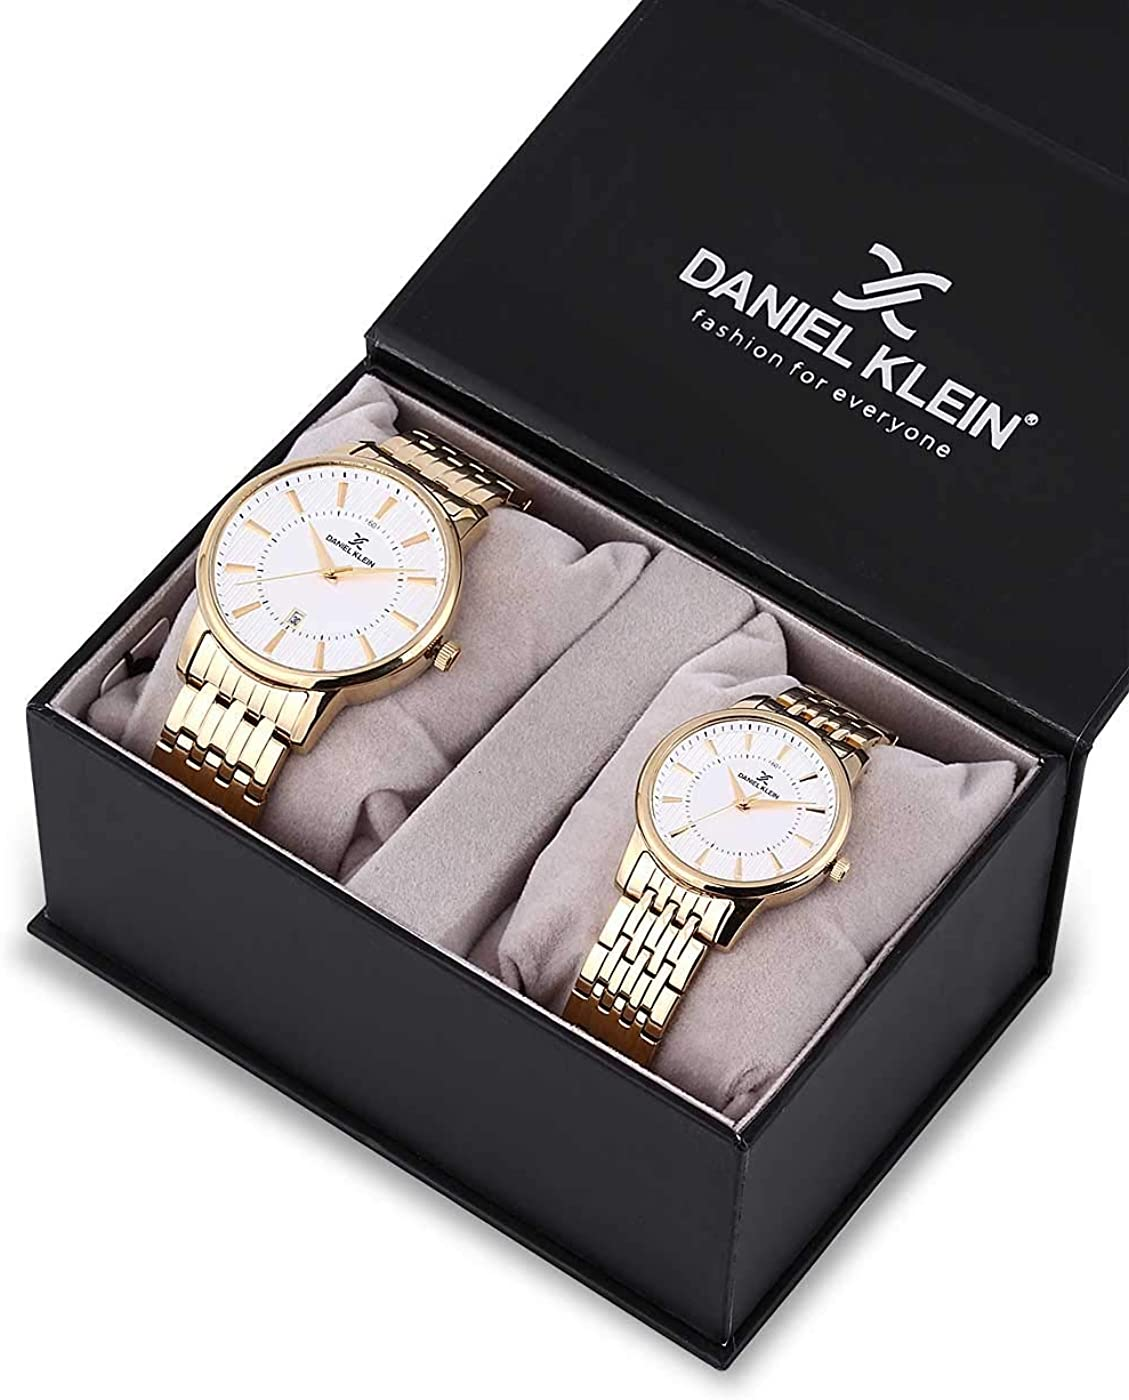 Daniel Klein His and Her Wrist Watch Set (DK12240-3) - Stainless Steel - 33mm Analog Mens and Womens Watches - Japanese Quartz Movement - Couples Set, Men & Women, Anniversary, Engagement - Gold Tone